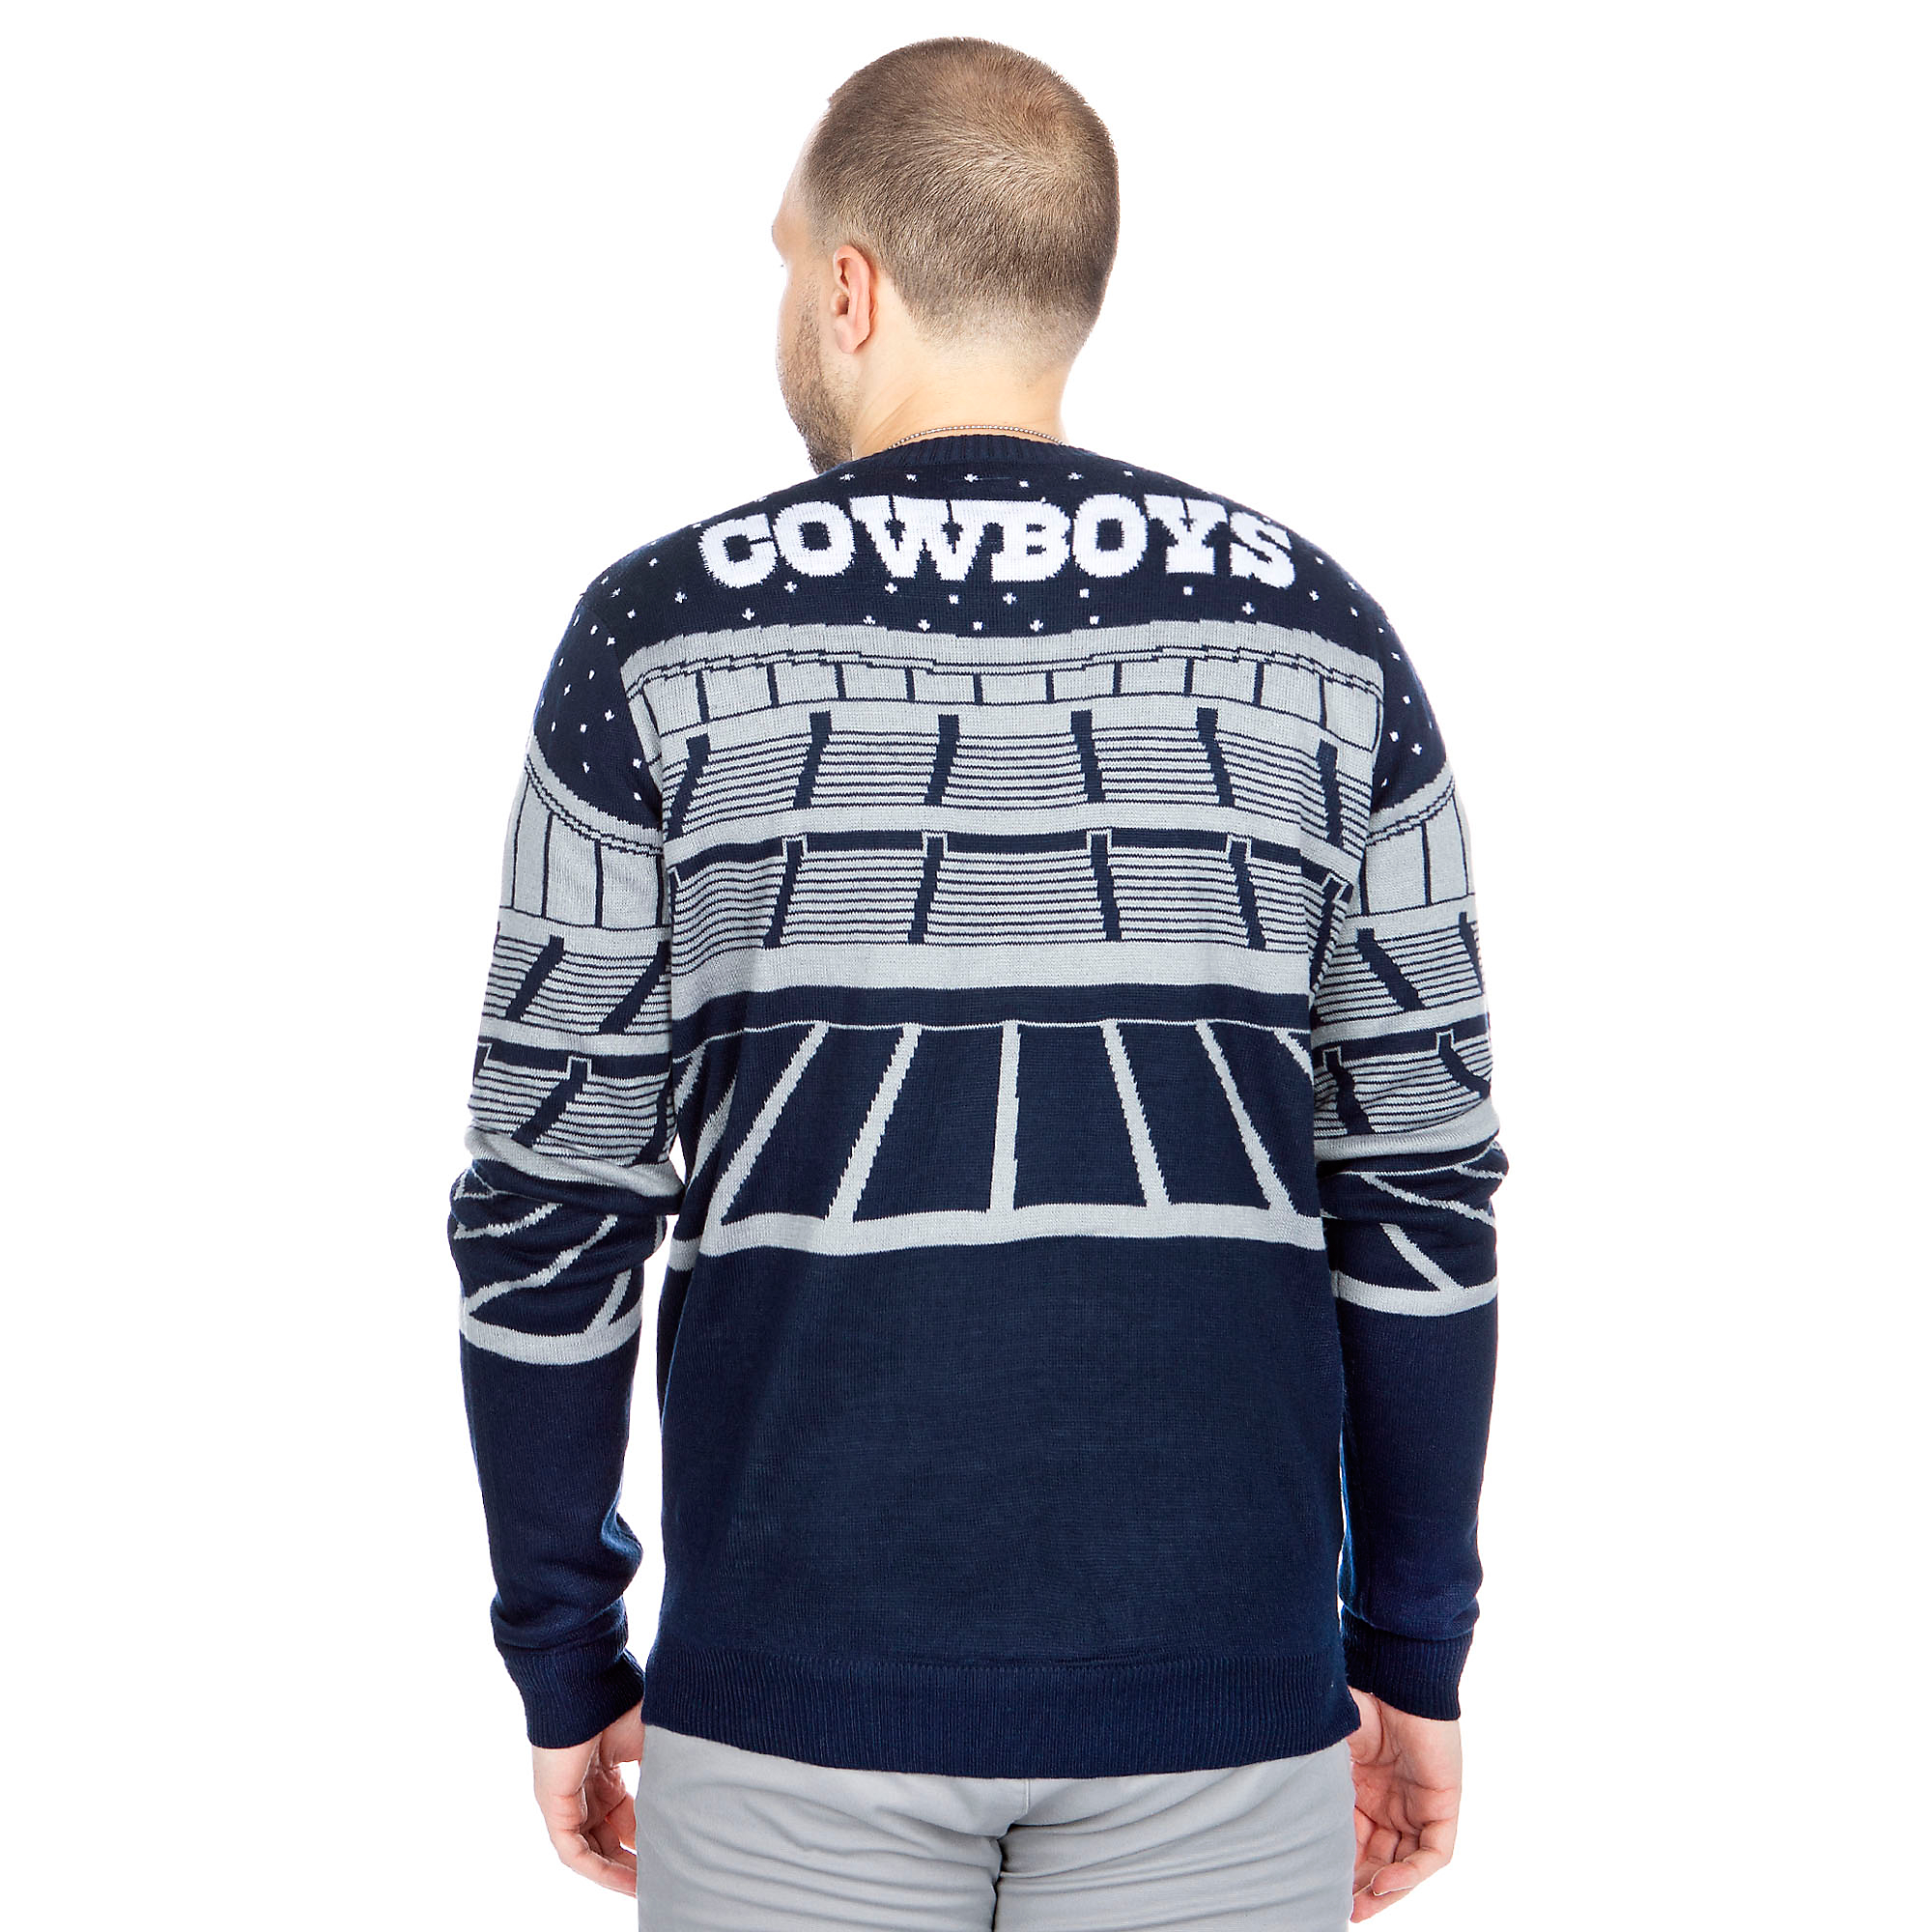 promo code a6198 d4a8a Dallas Cowboys Bluetooth Ugly Sweater | Fans United